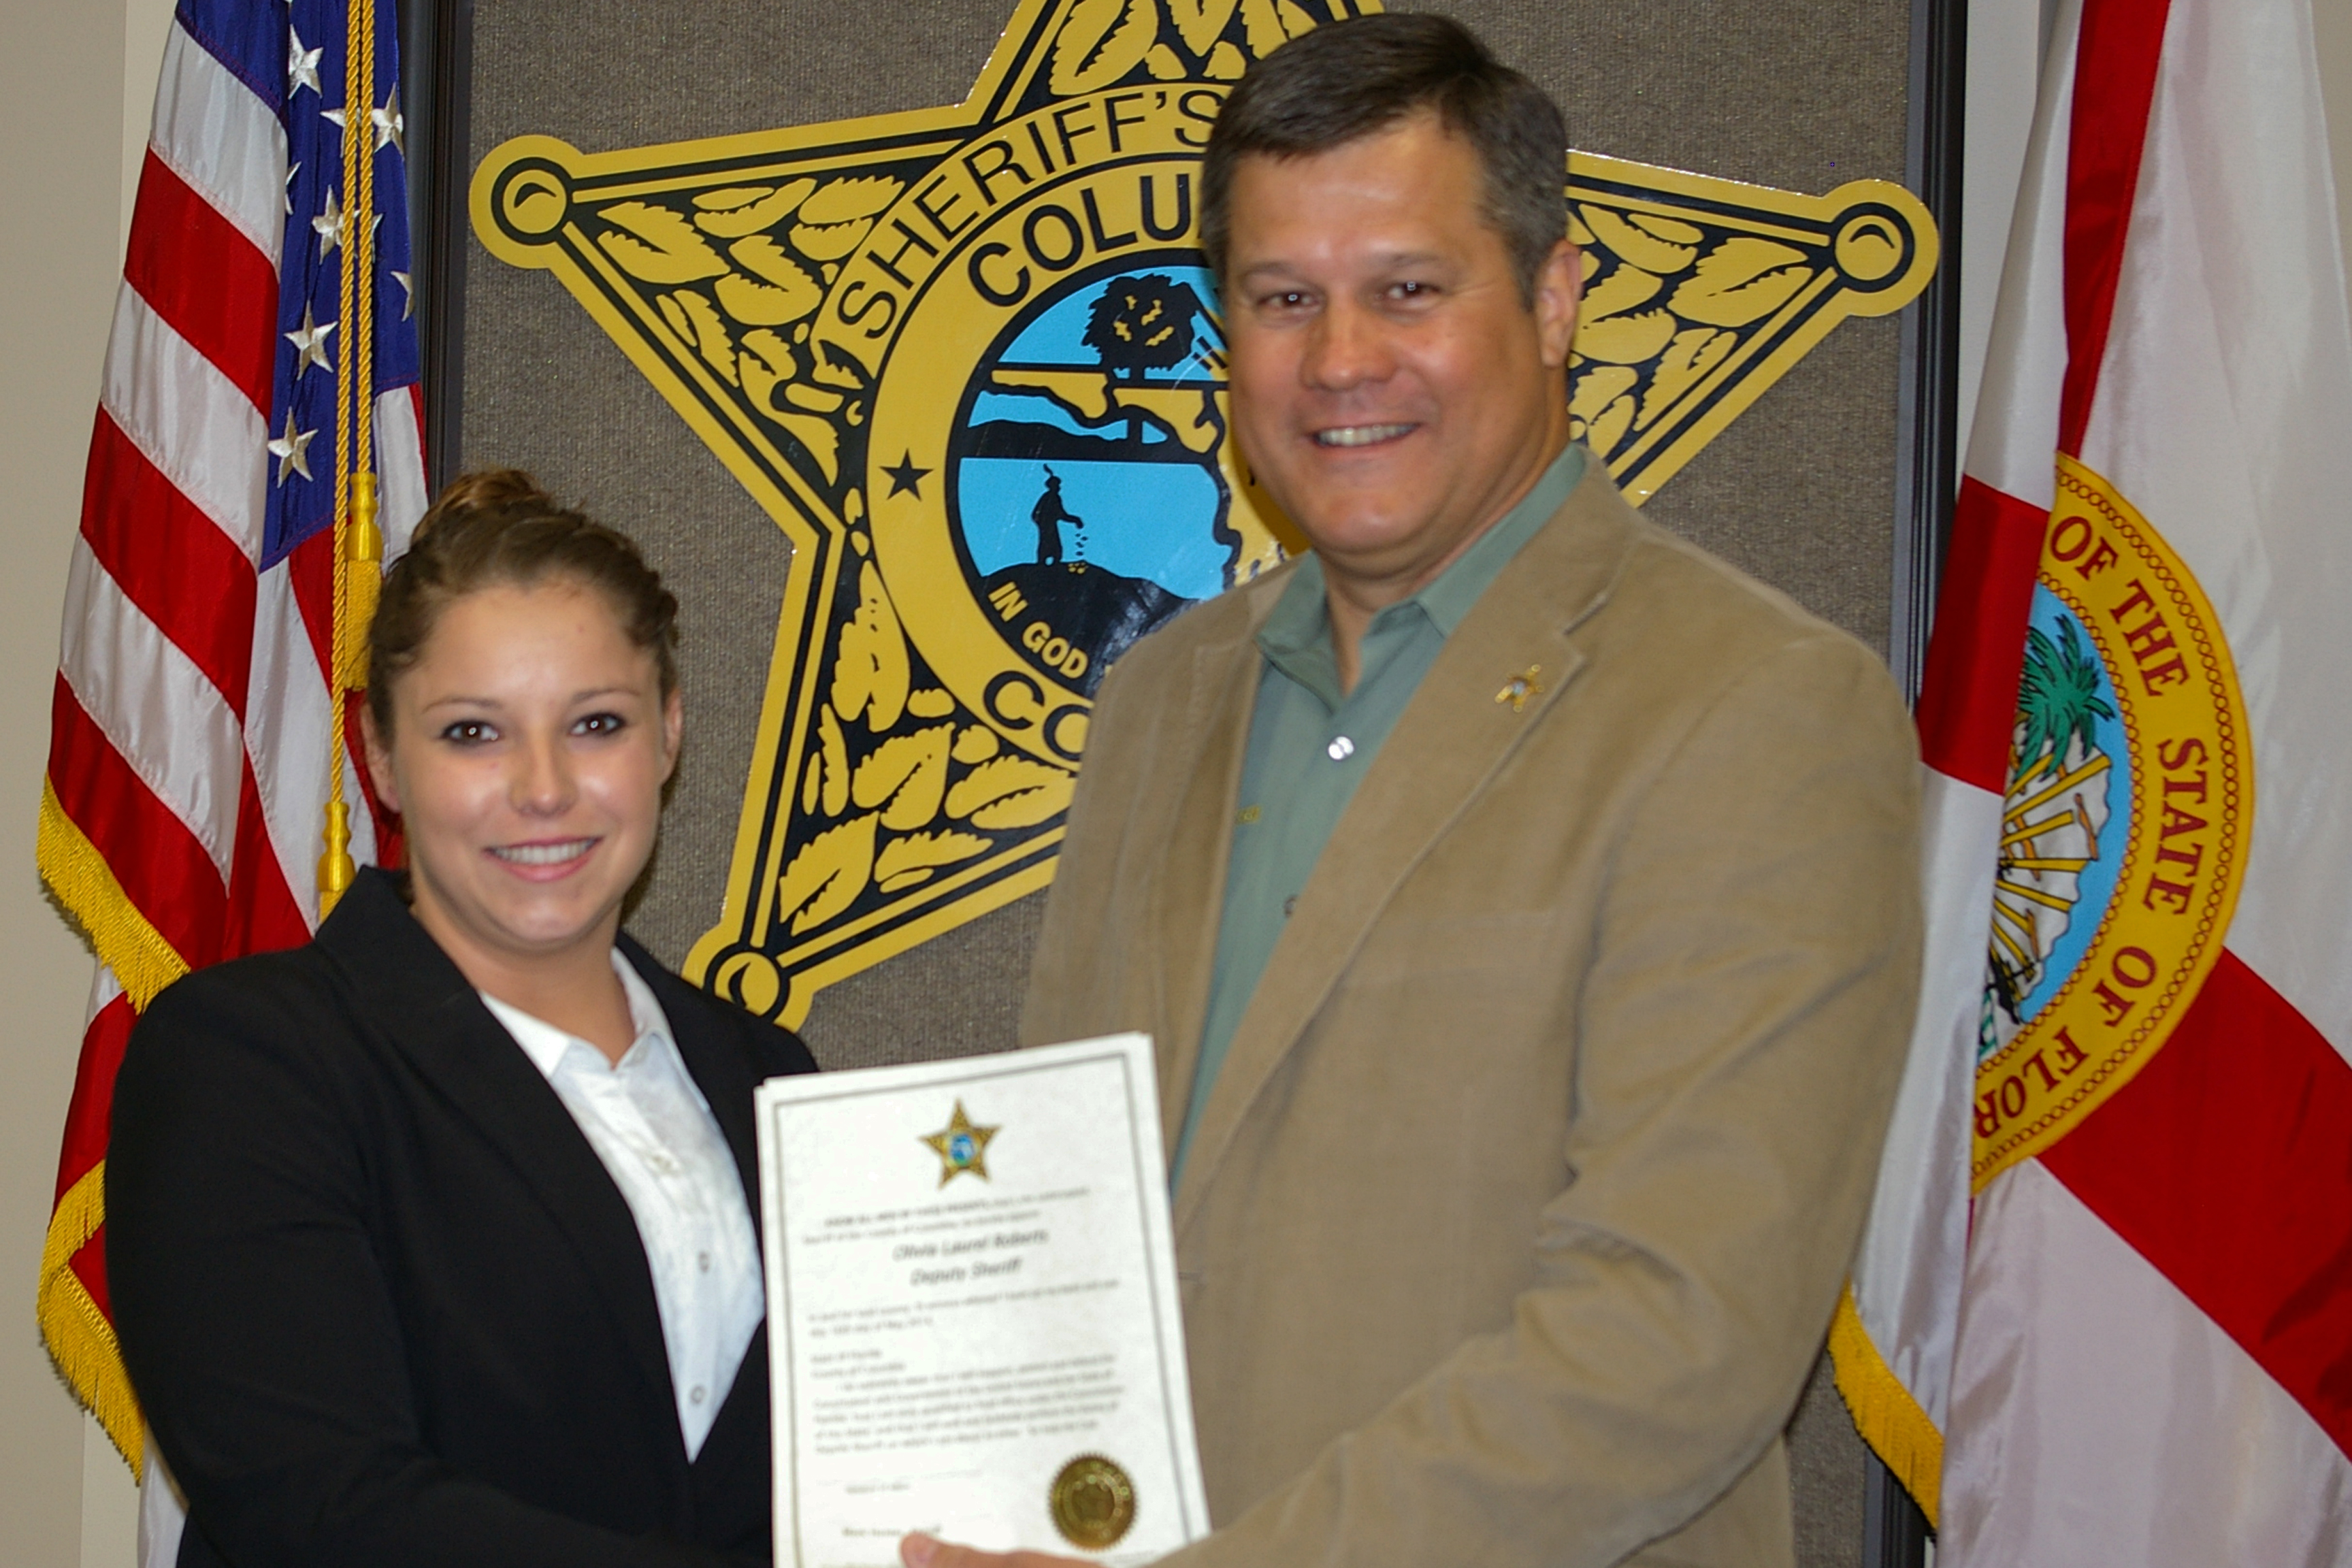 Deputy Sheriff Olivia Roberts and Sheriff Mark Hunter